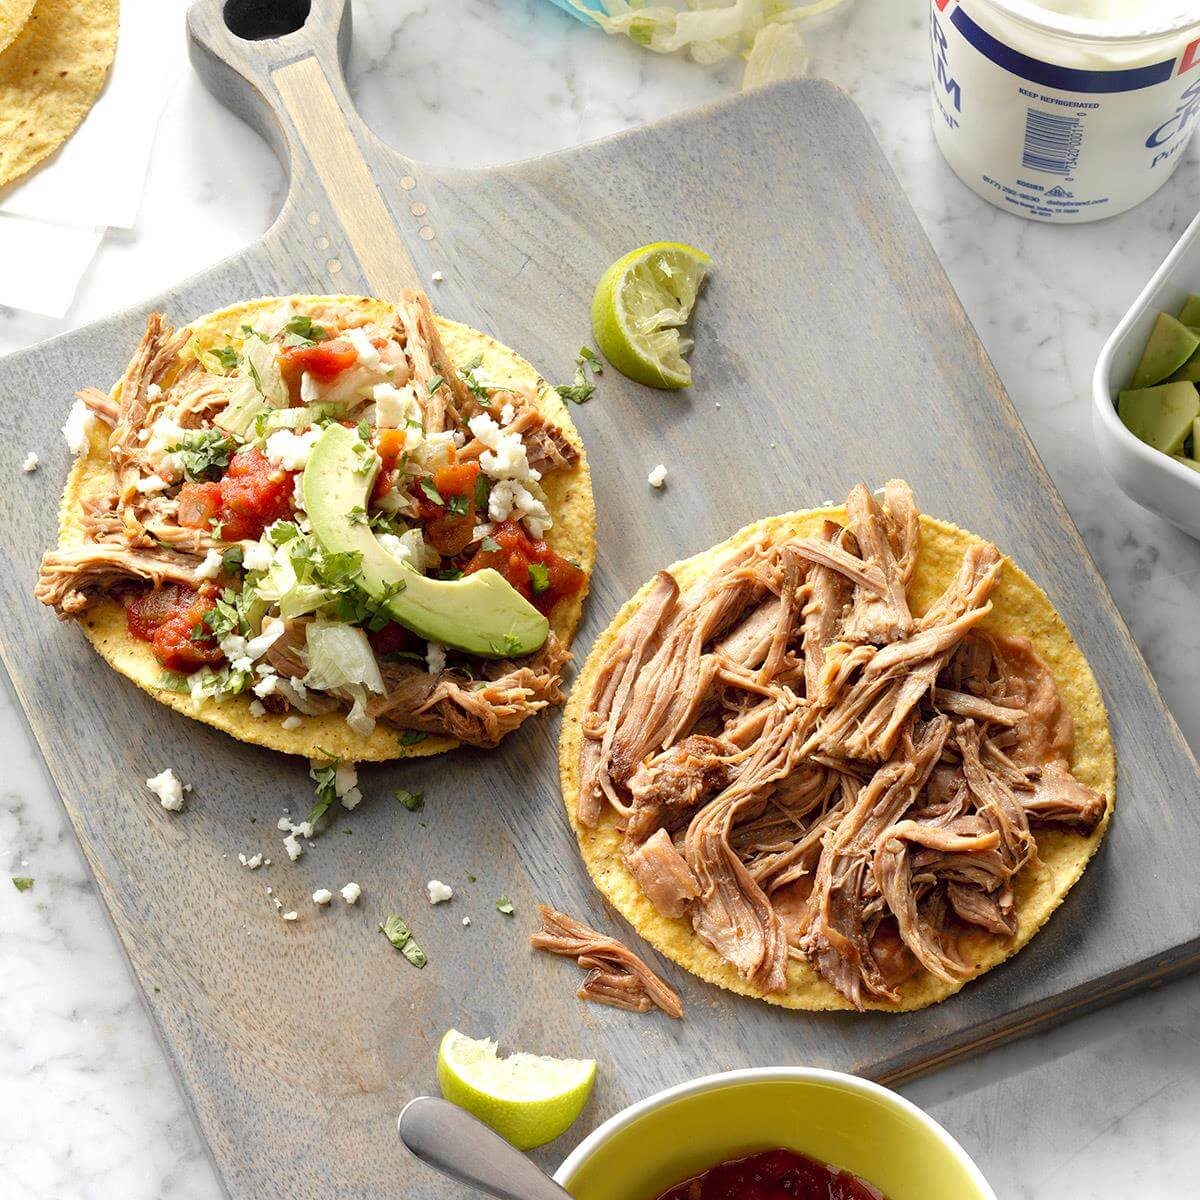 The Best Ways to Use Refried Beans